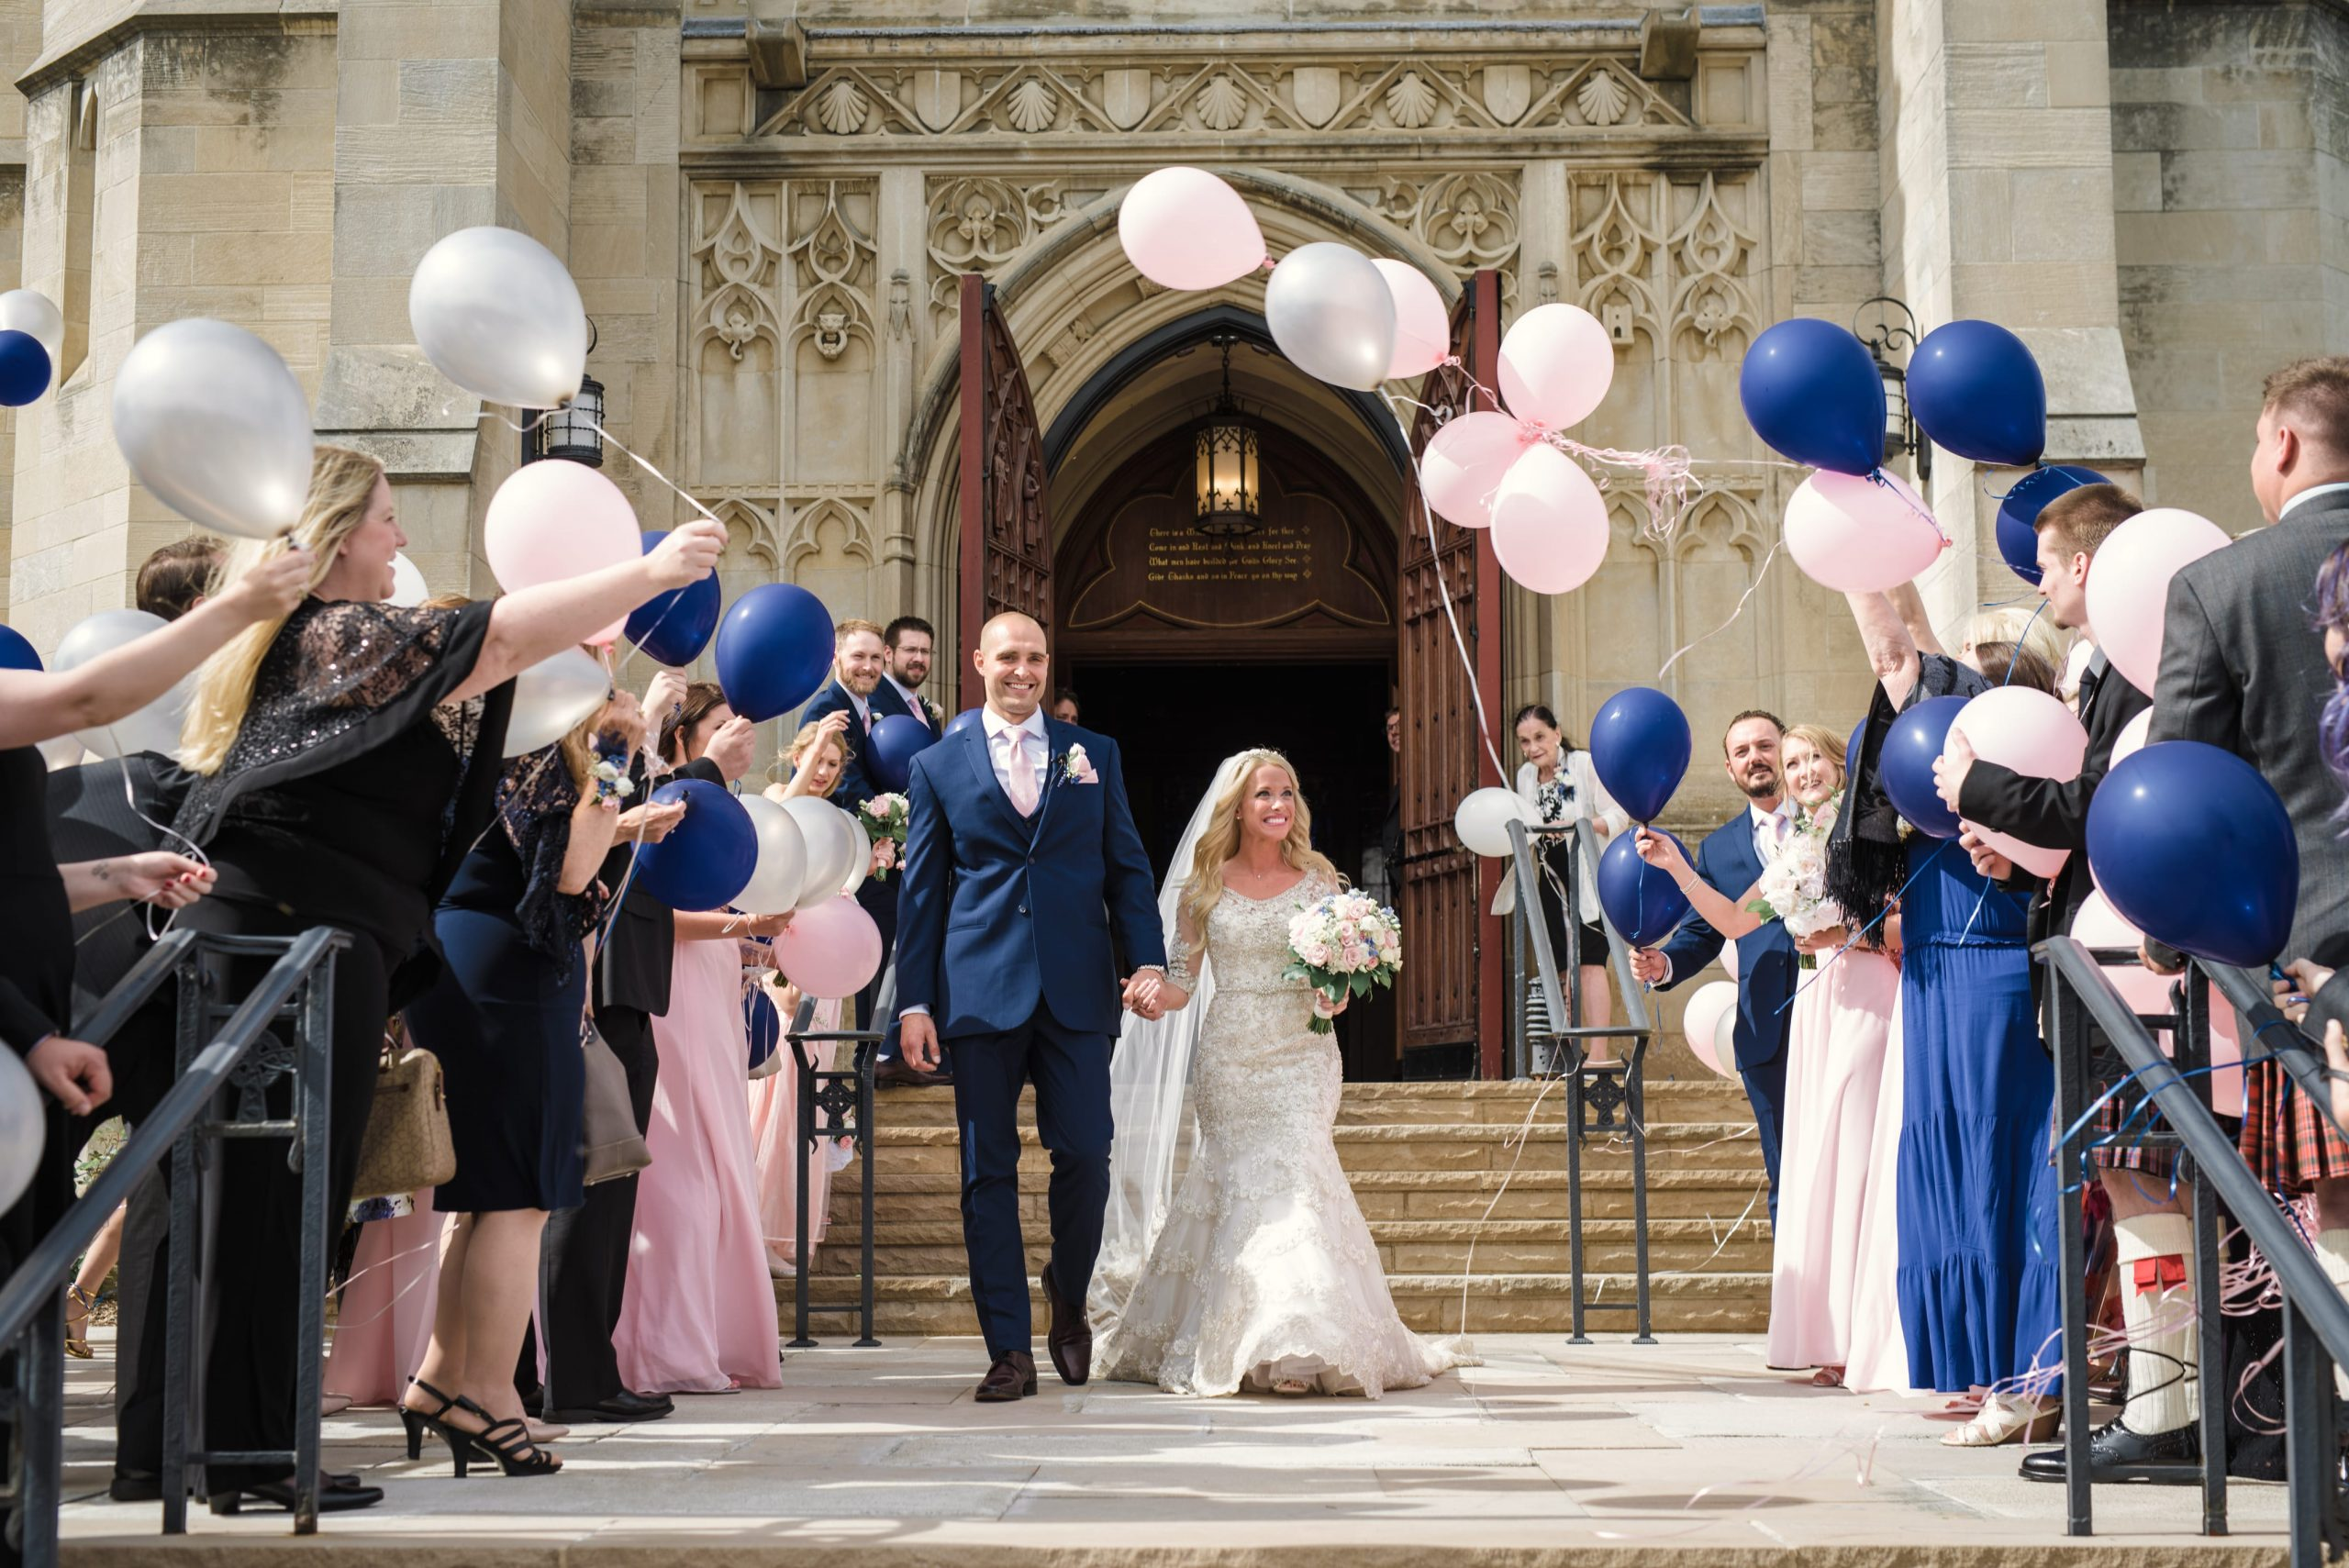 bride and groom leaving church with guests holding balloons